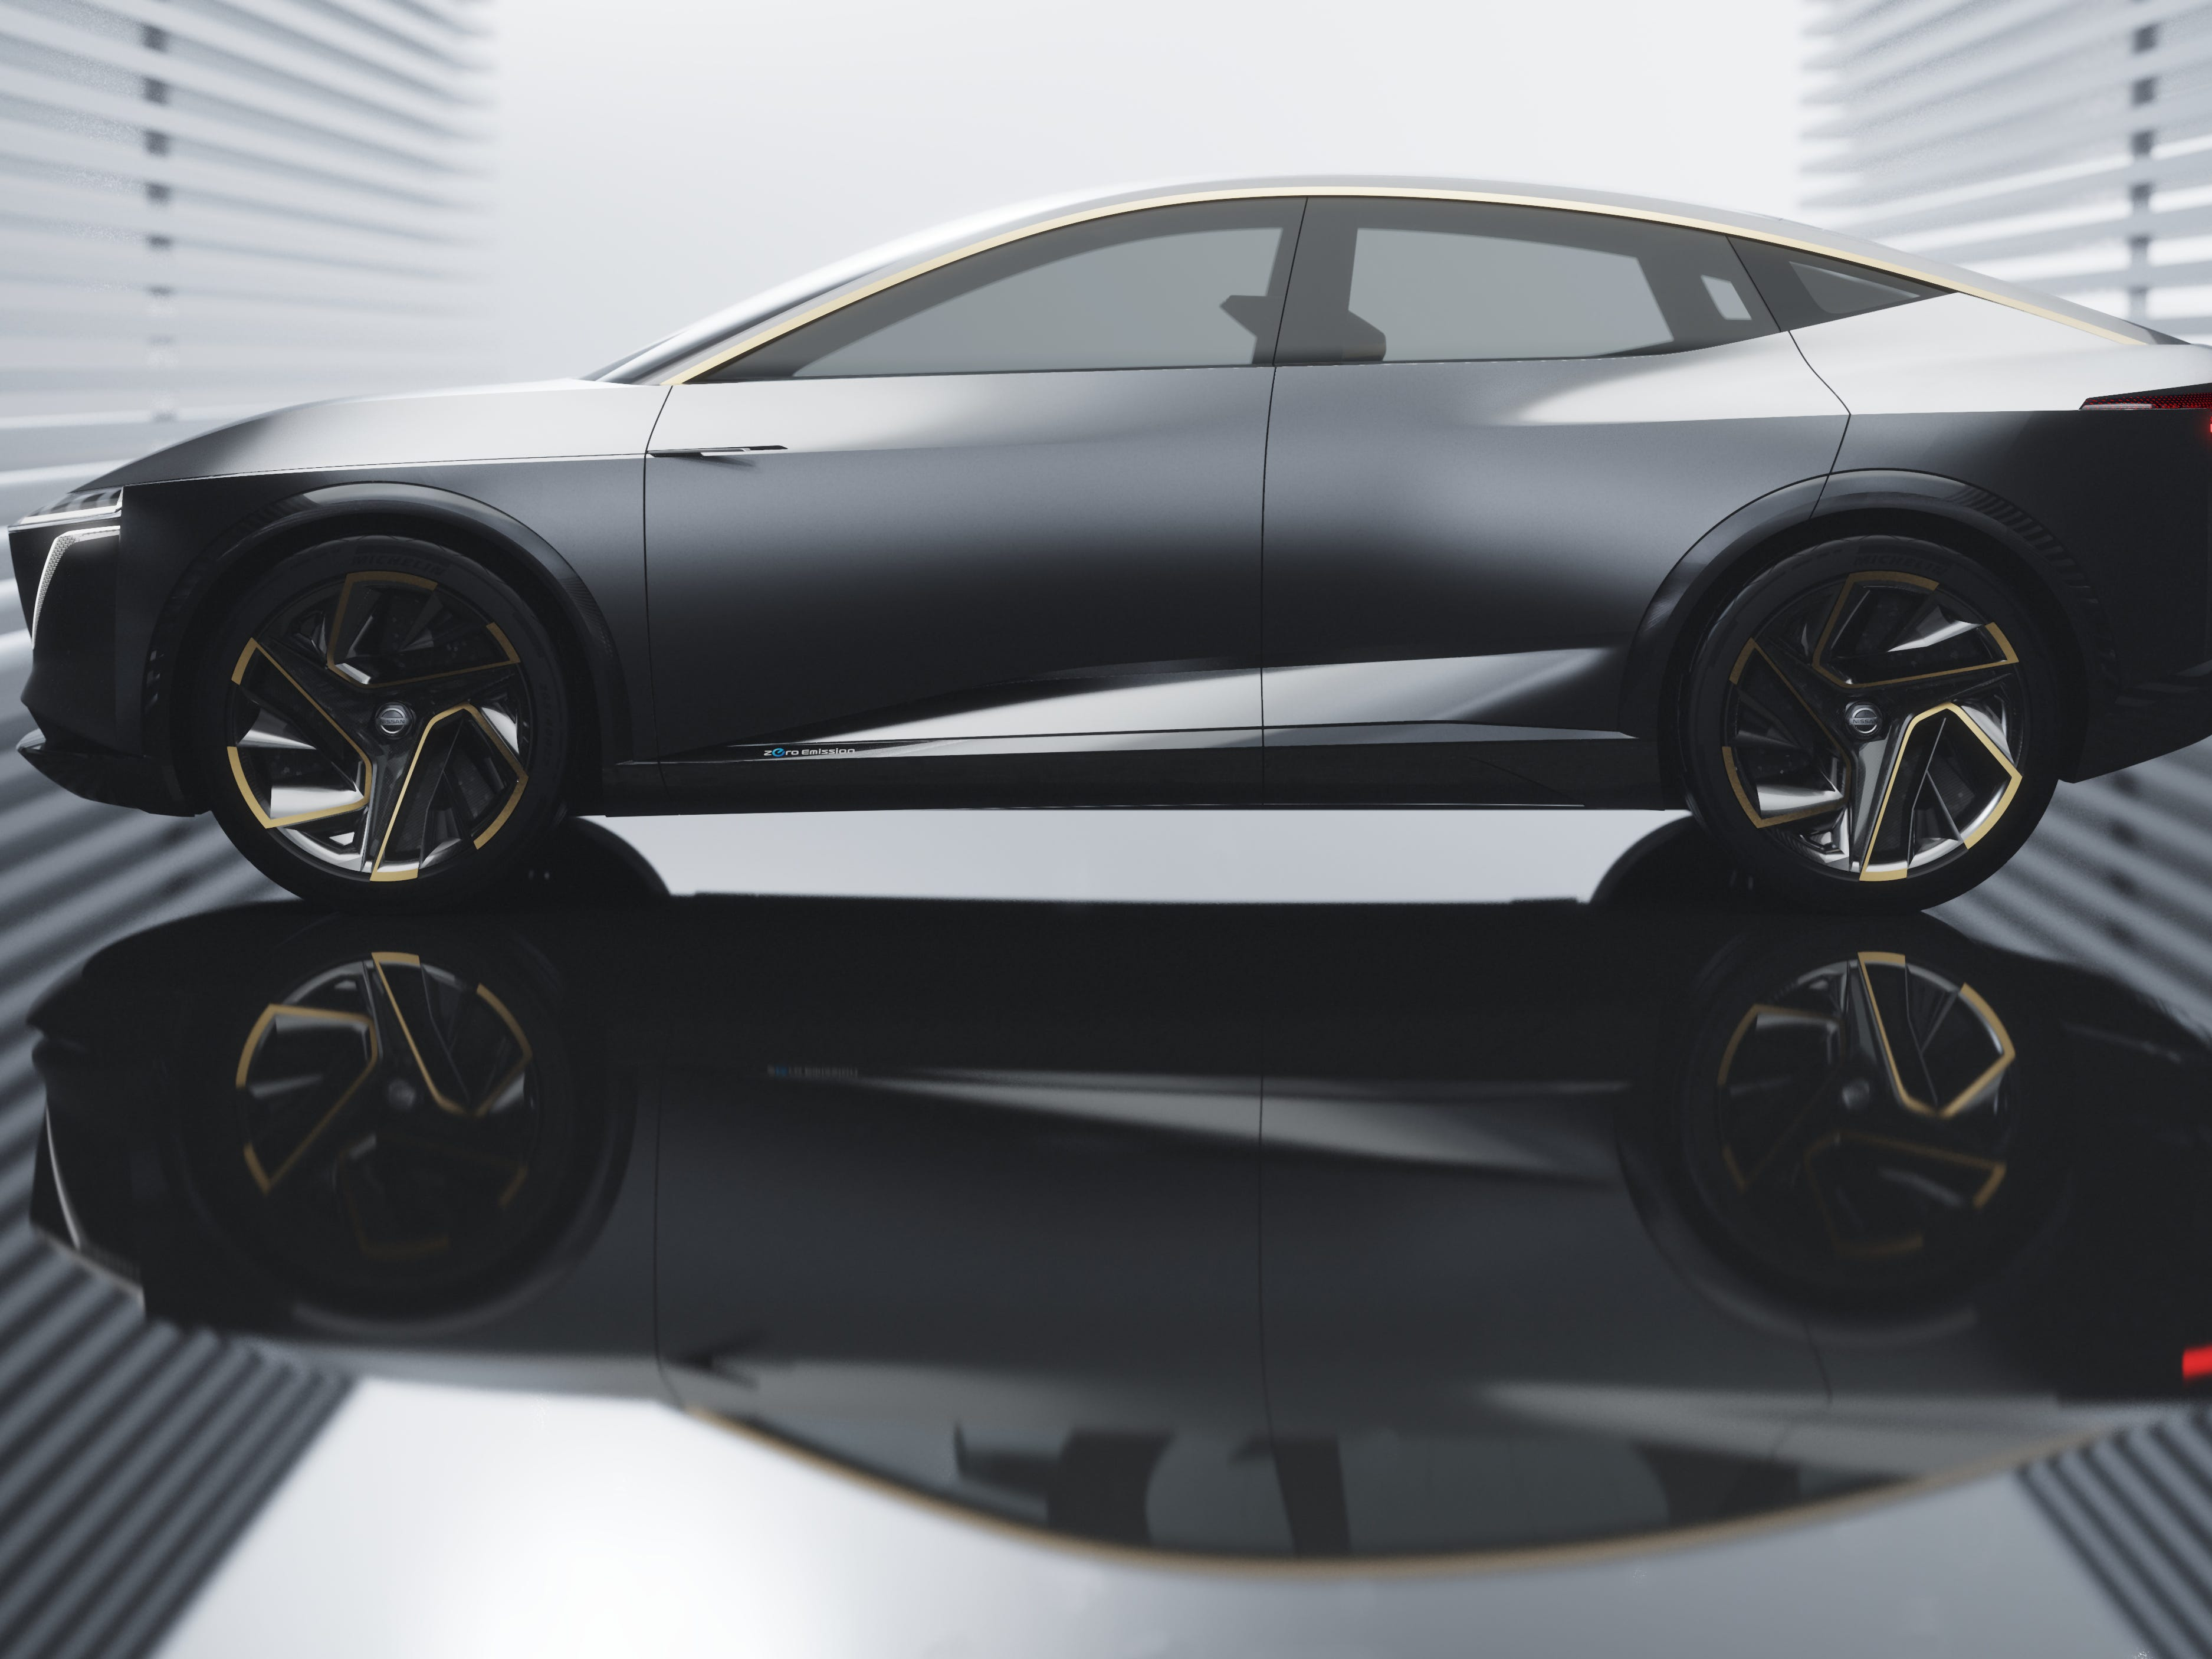 The B-pillar-less 4-door body includes reverse-opening rear doors for easy interior access, a super-thin roof structure, invisible door handles with eClinch, super-flush side windows and wing cameras in place of outside rearview mirrors. The wing cameras fold in when the IMs is in autonomous mode.